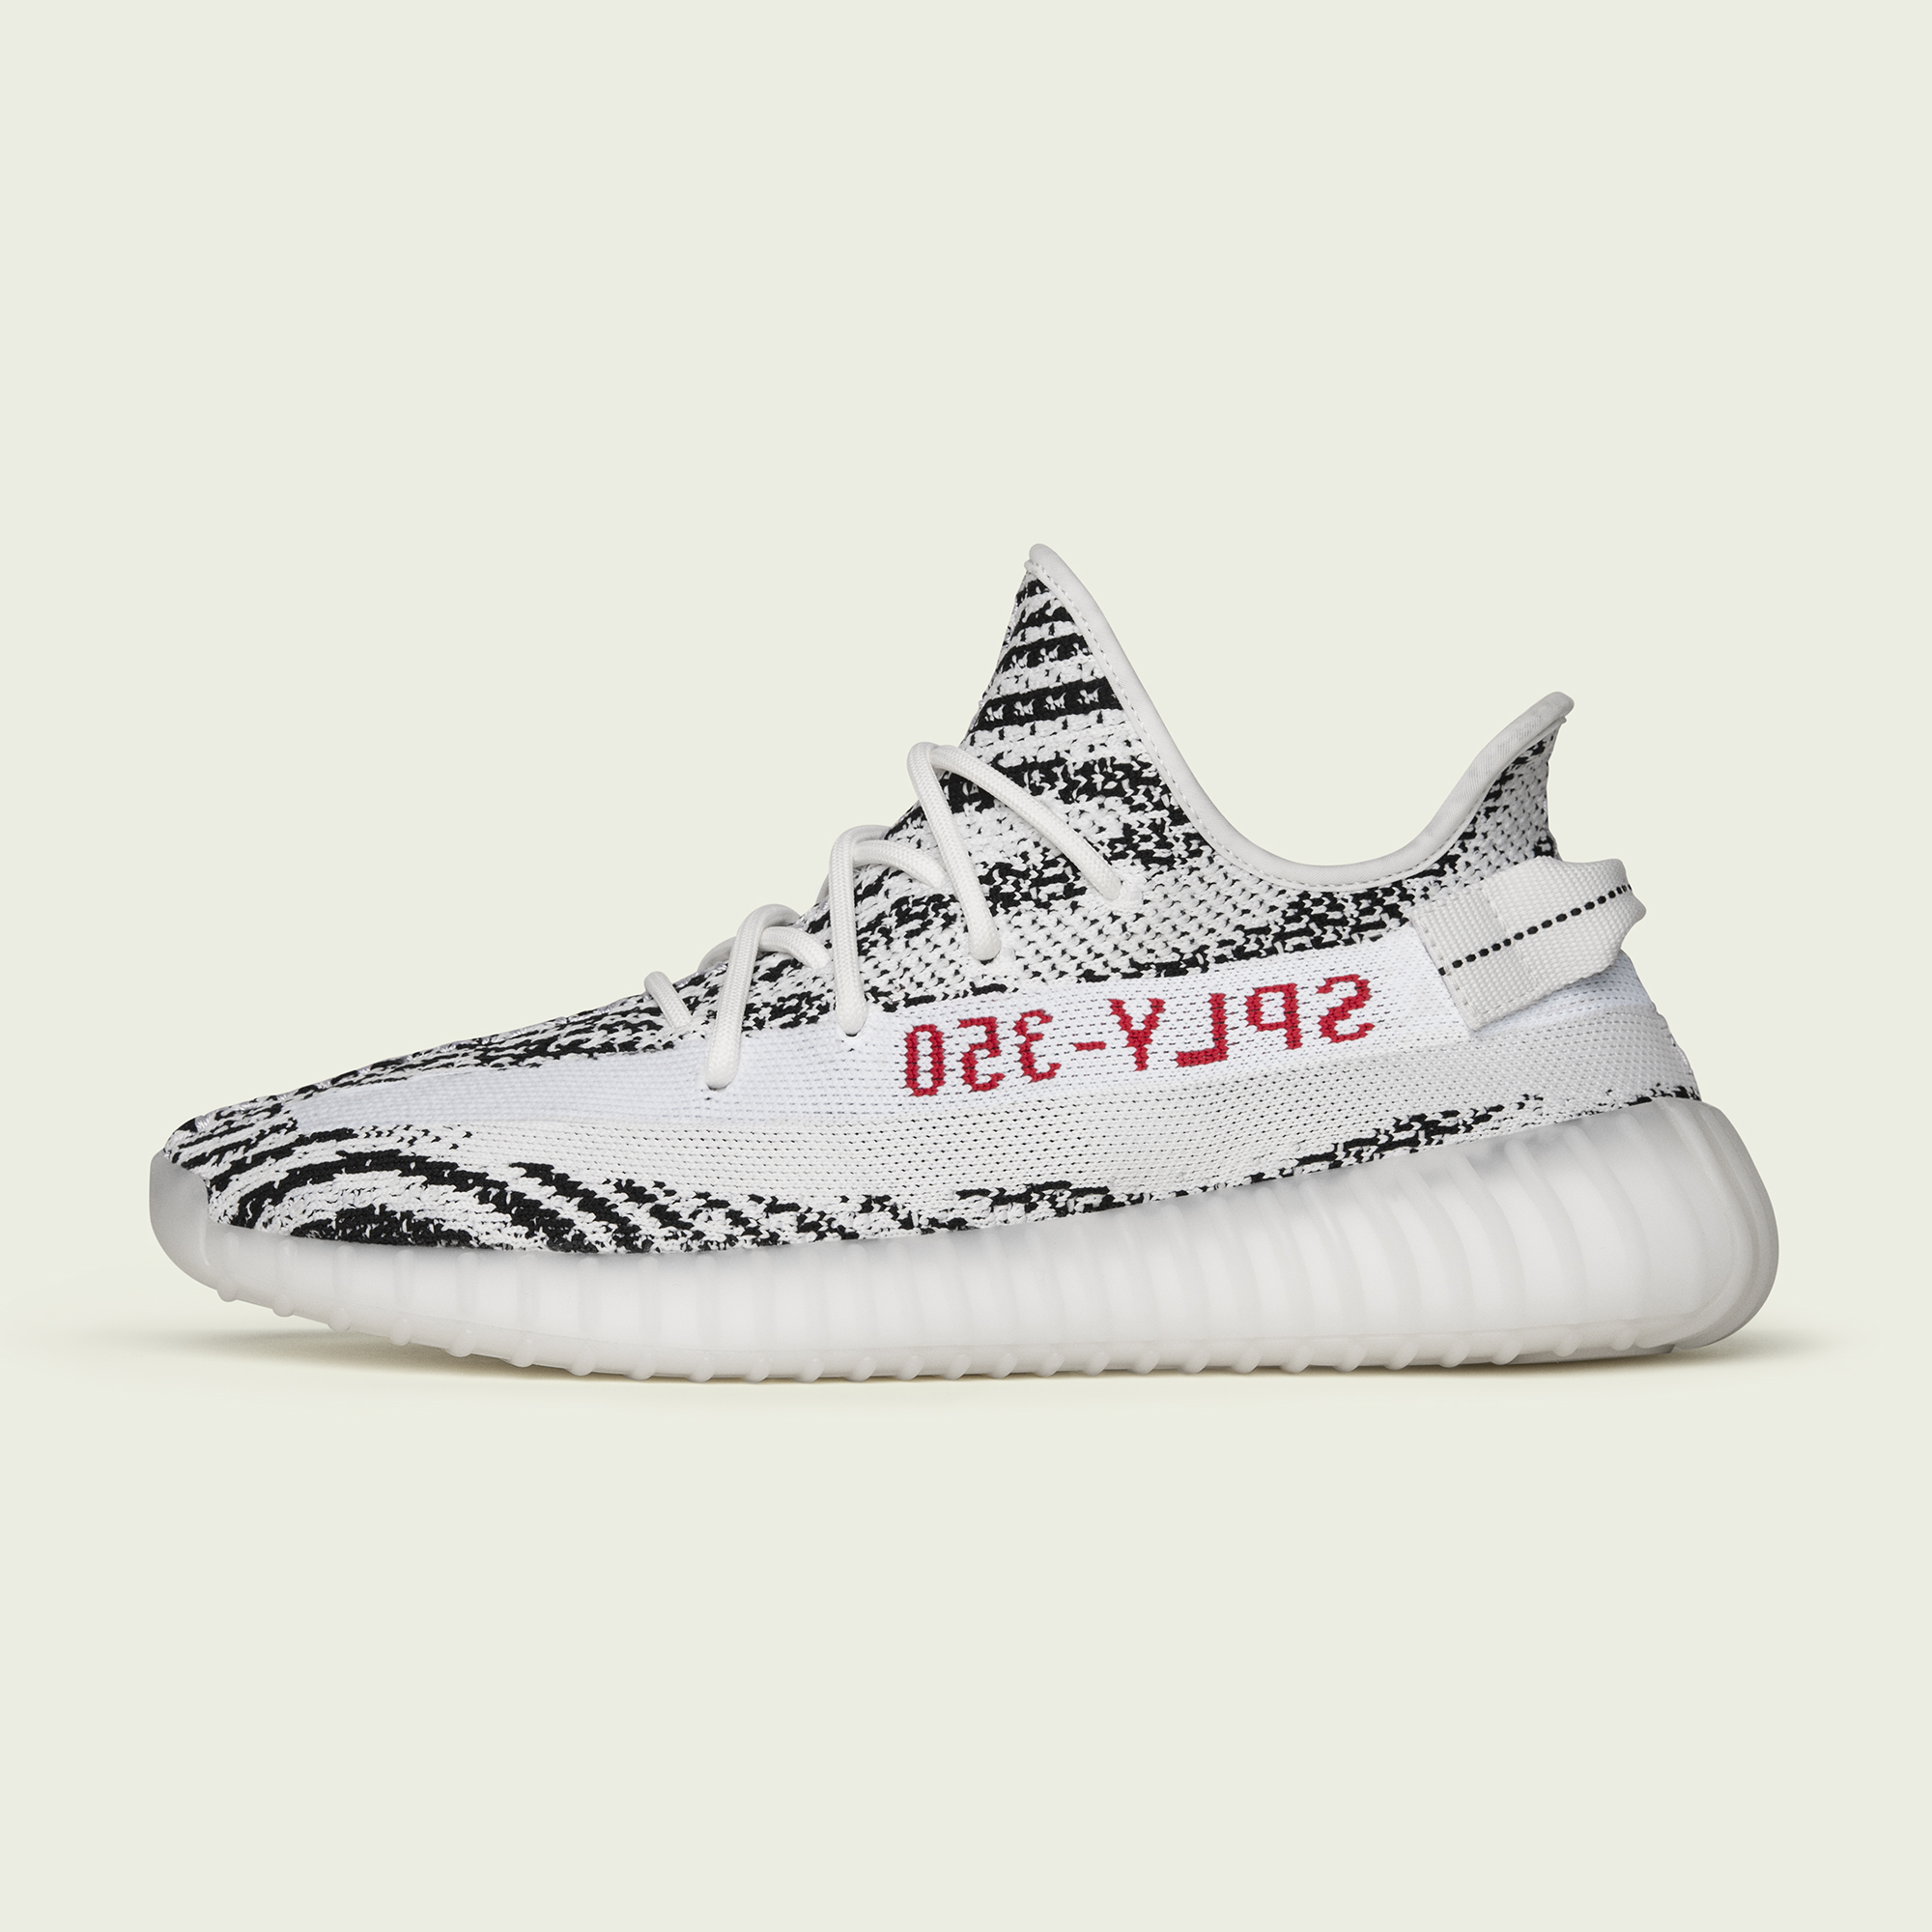 Adidas Yeezy Boost 350 V2 Infant 'Cream White' Urban Necessities